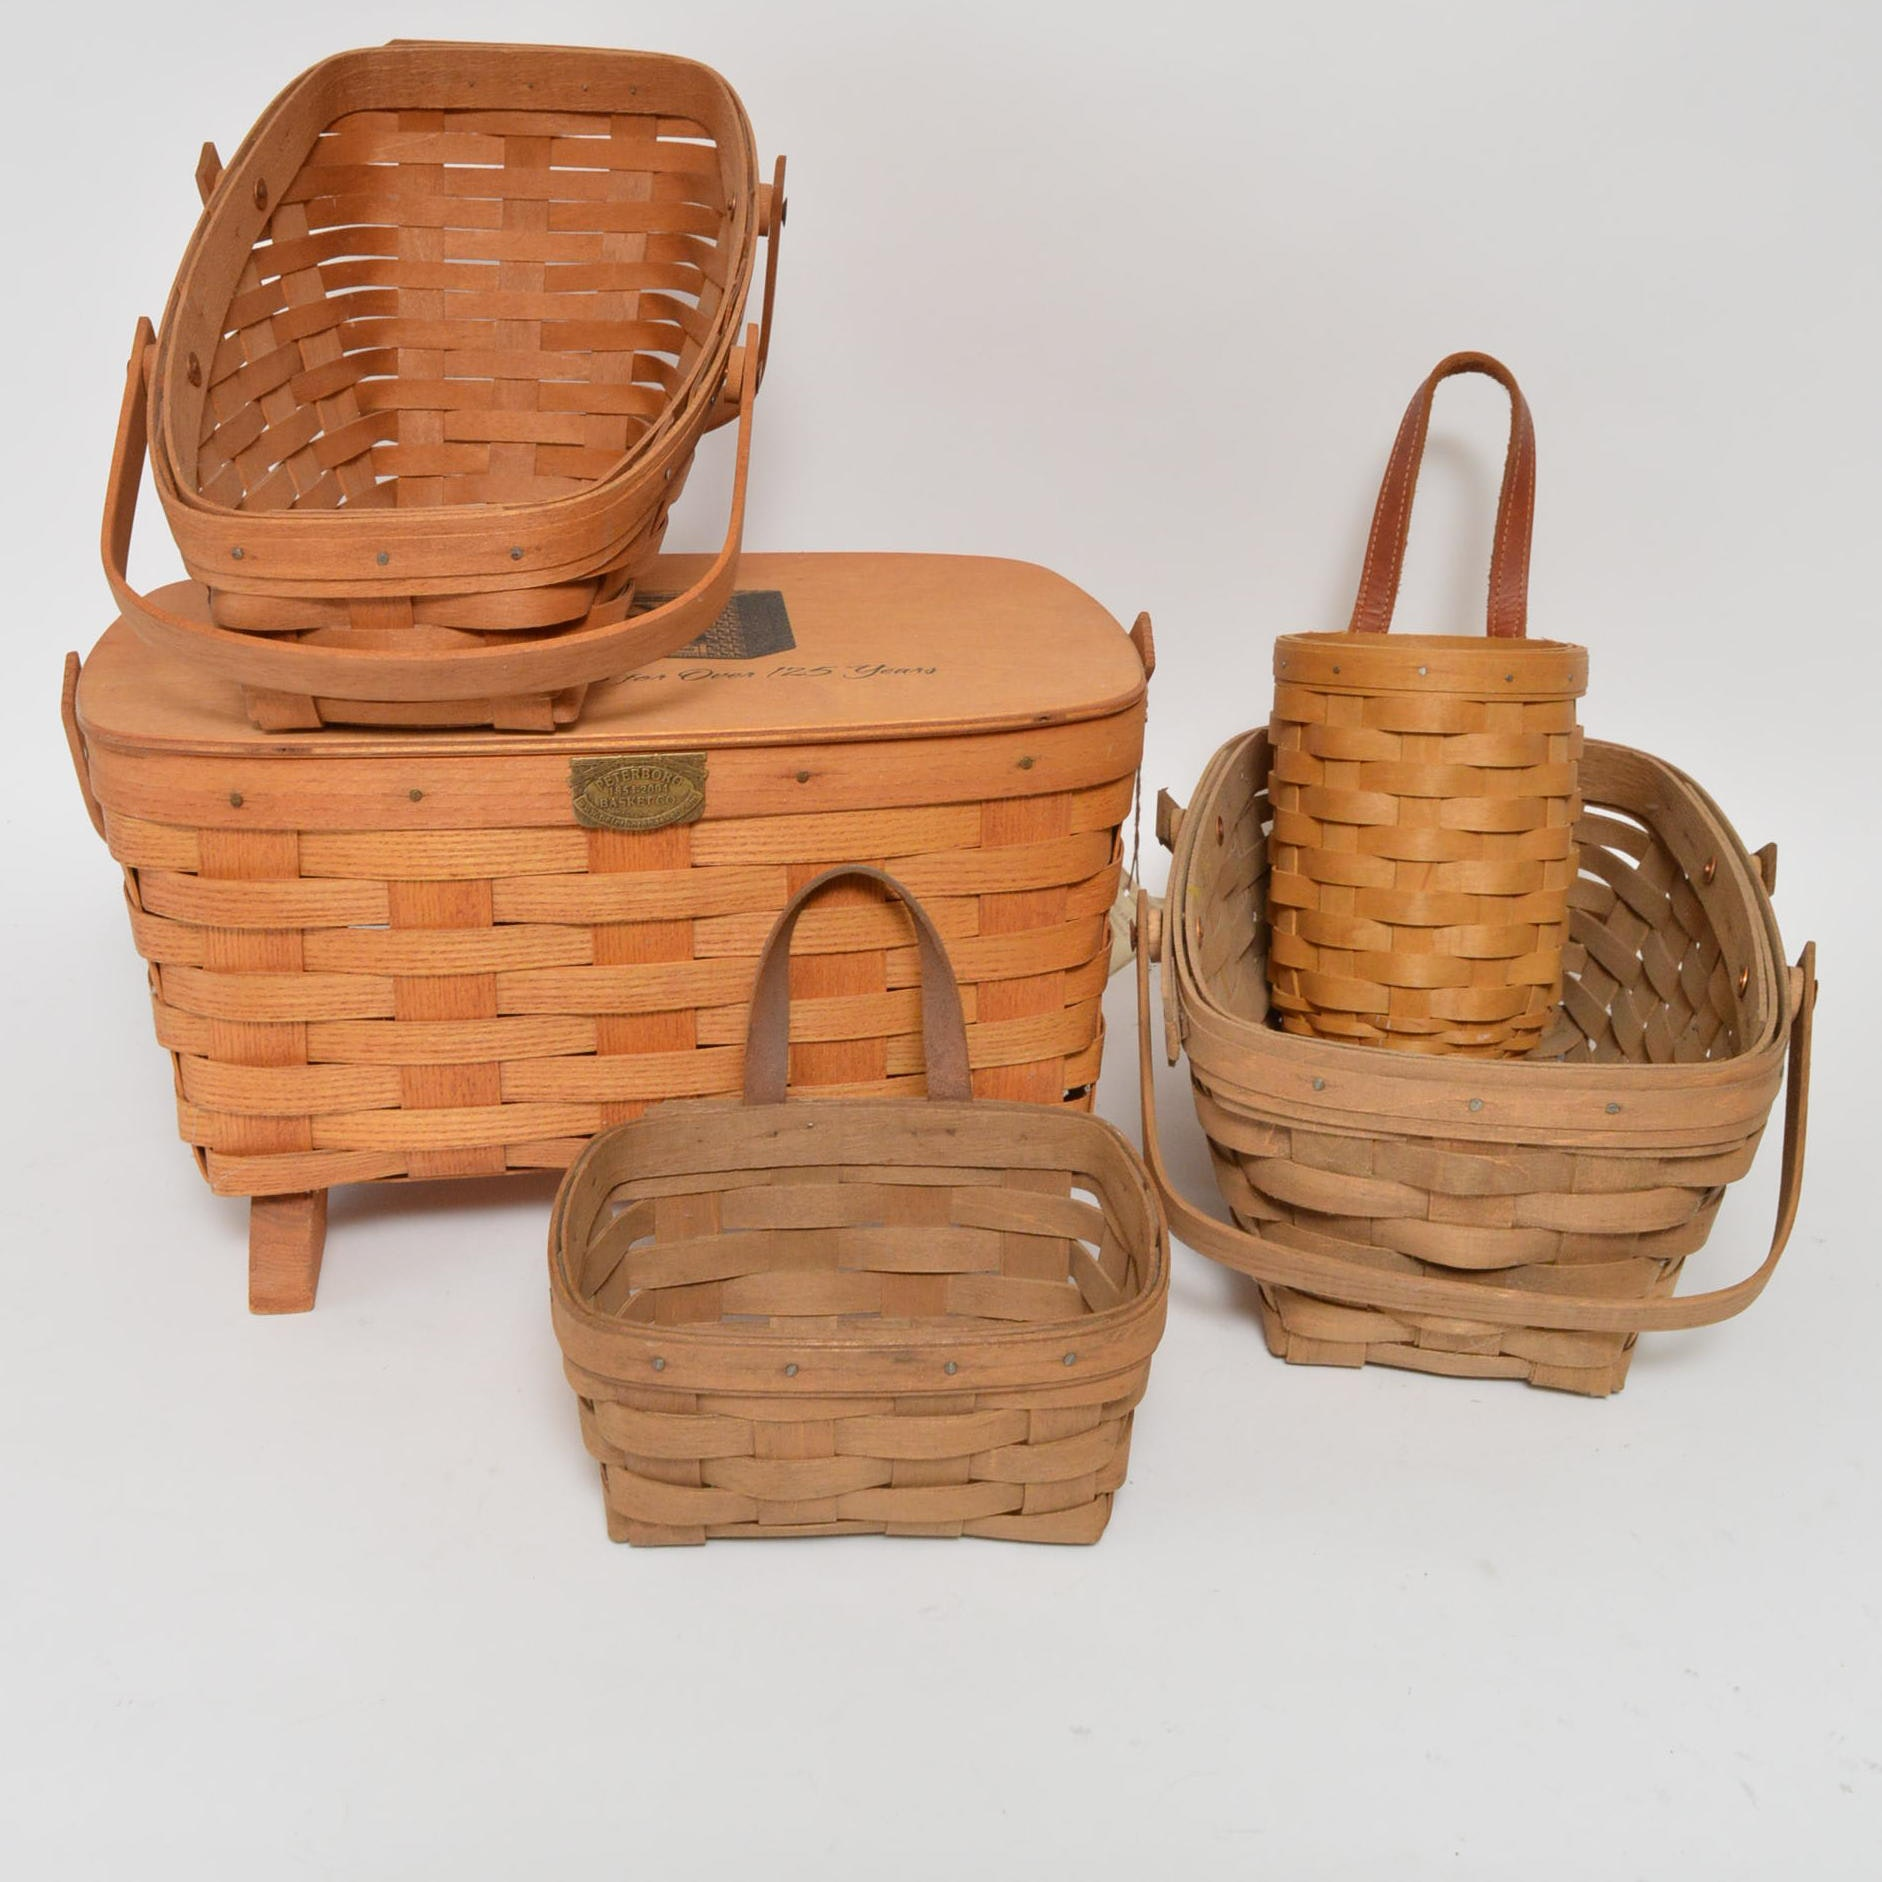 Peterboro and Longaberger Wood Baskets